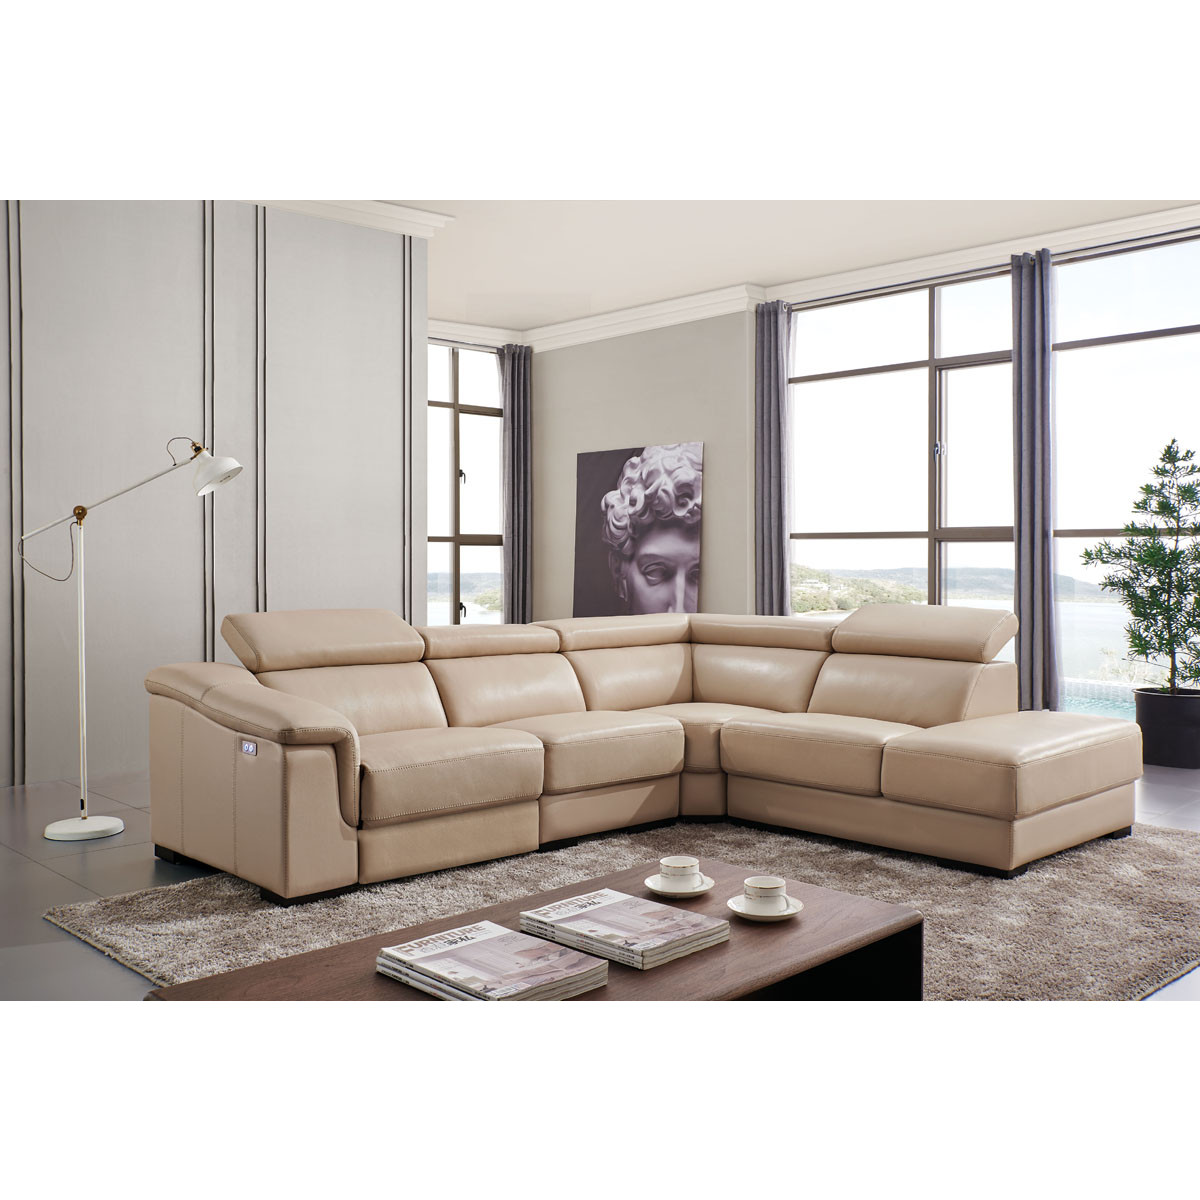 760 Sectional Sofa w/ Right Chaise & Left Recliner in Beige Leather by ESF  Furniture Imports